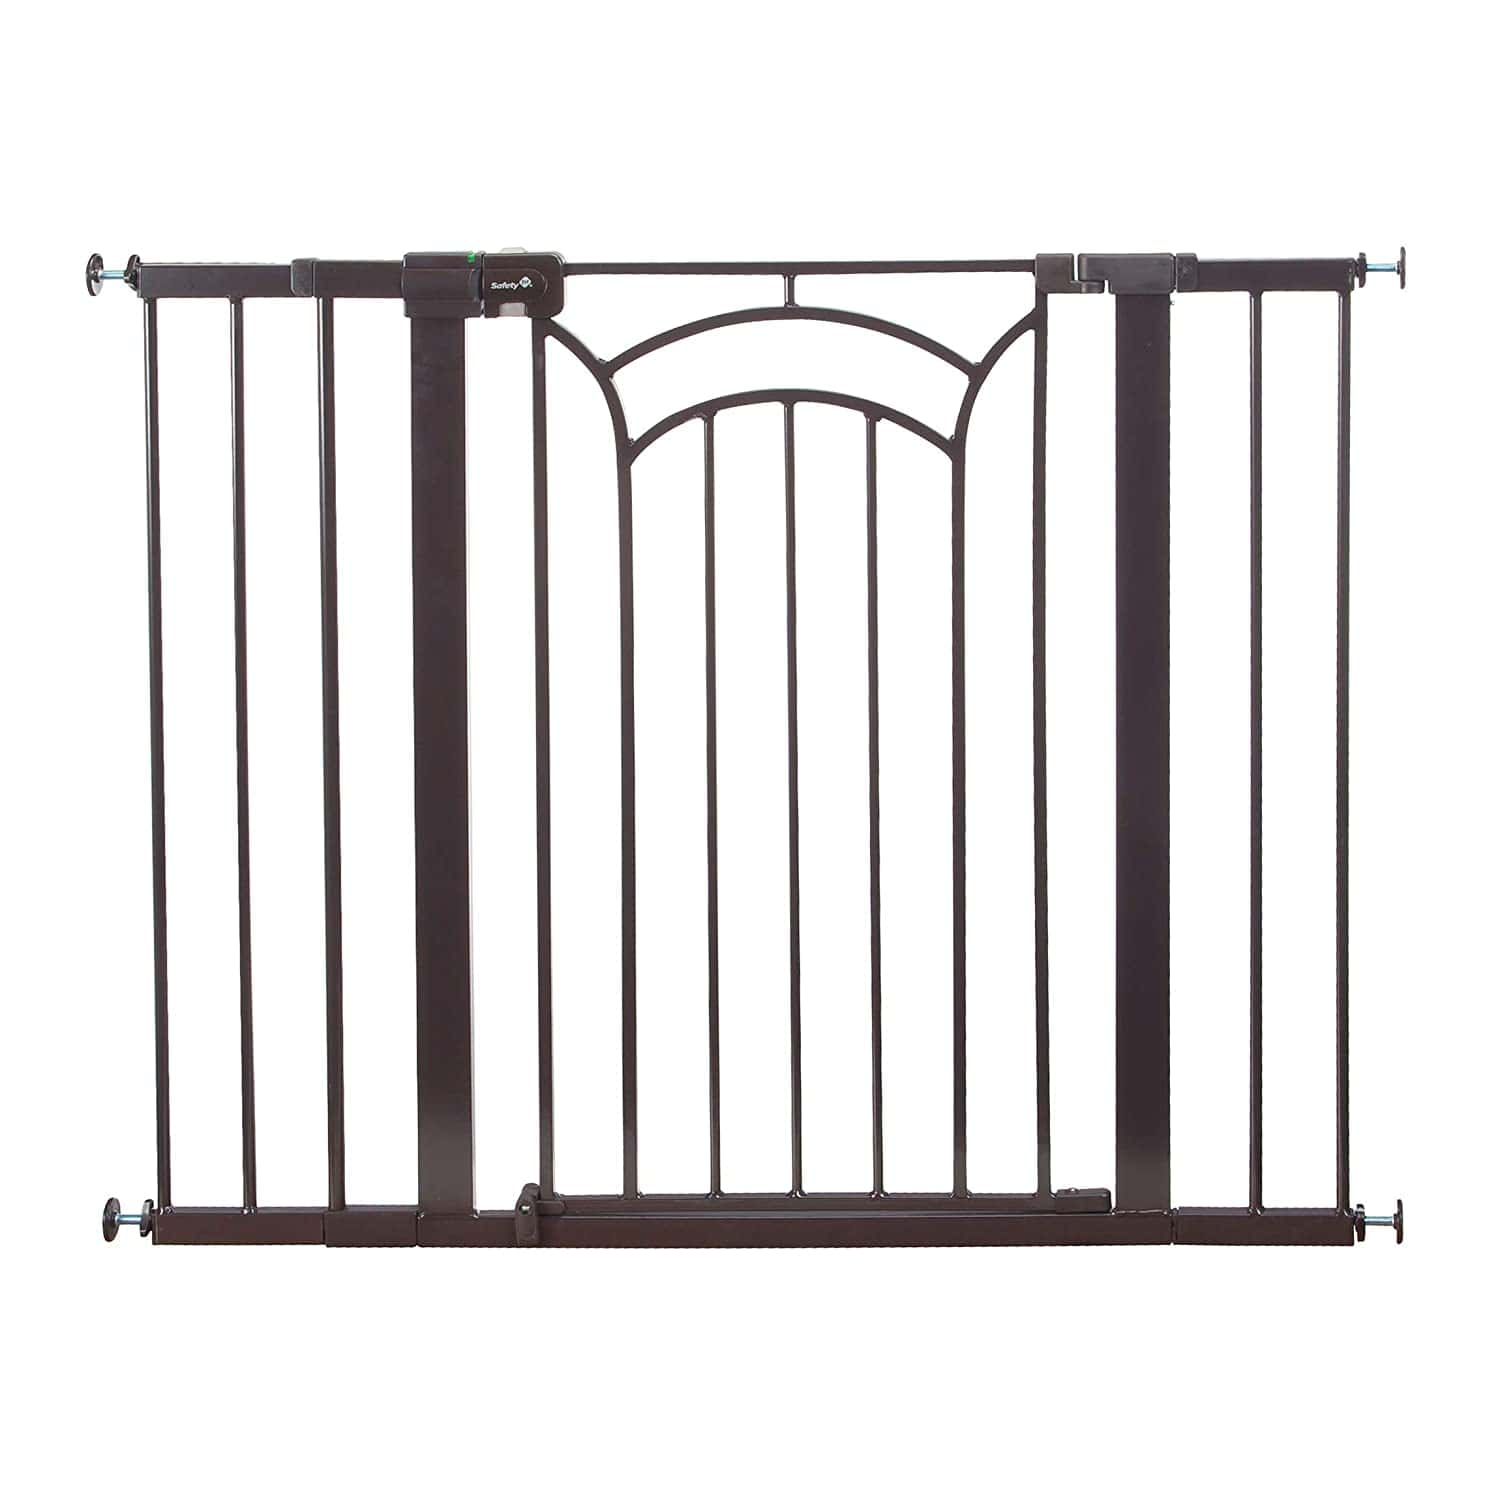 Safety 1st Decor Pressure-Mounted Baby Gate Product Image